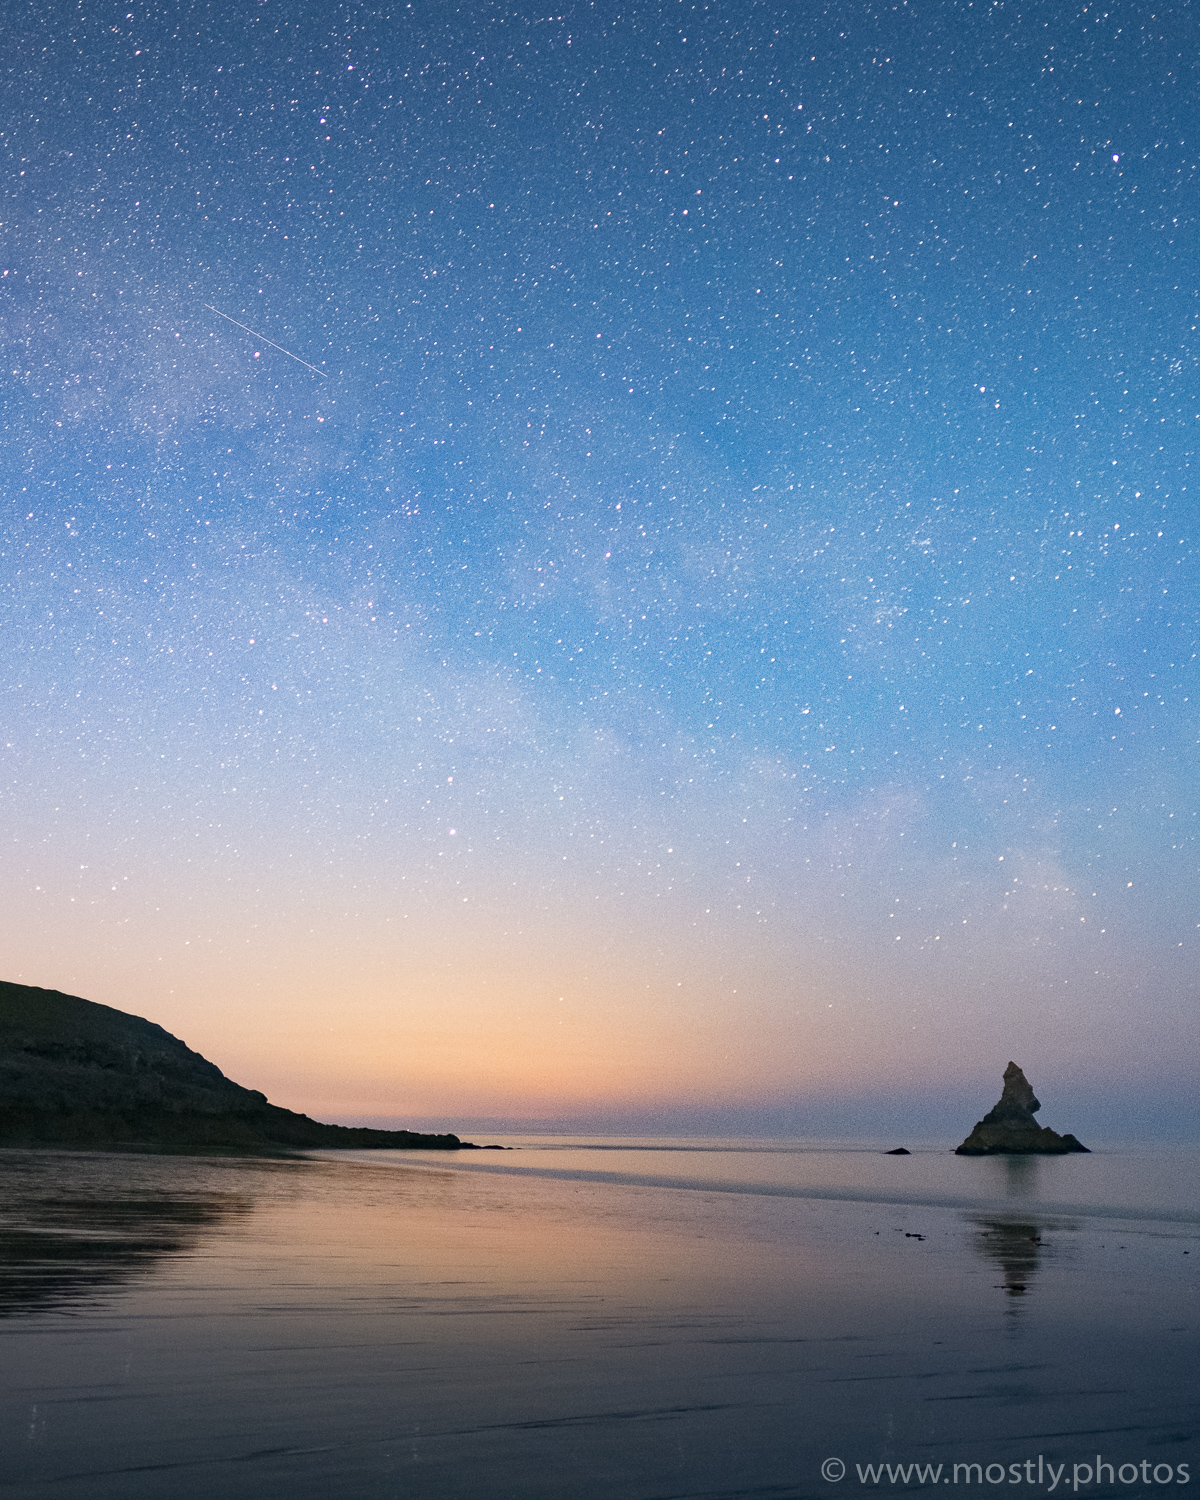 Fuji X-T2 - Fuji 16mm f1.4 - (20 second exposure, ISO 3200, f1.4)  Milky Way and shooting Star over Church Rock  - Broad Haven Beach, Wales